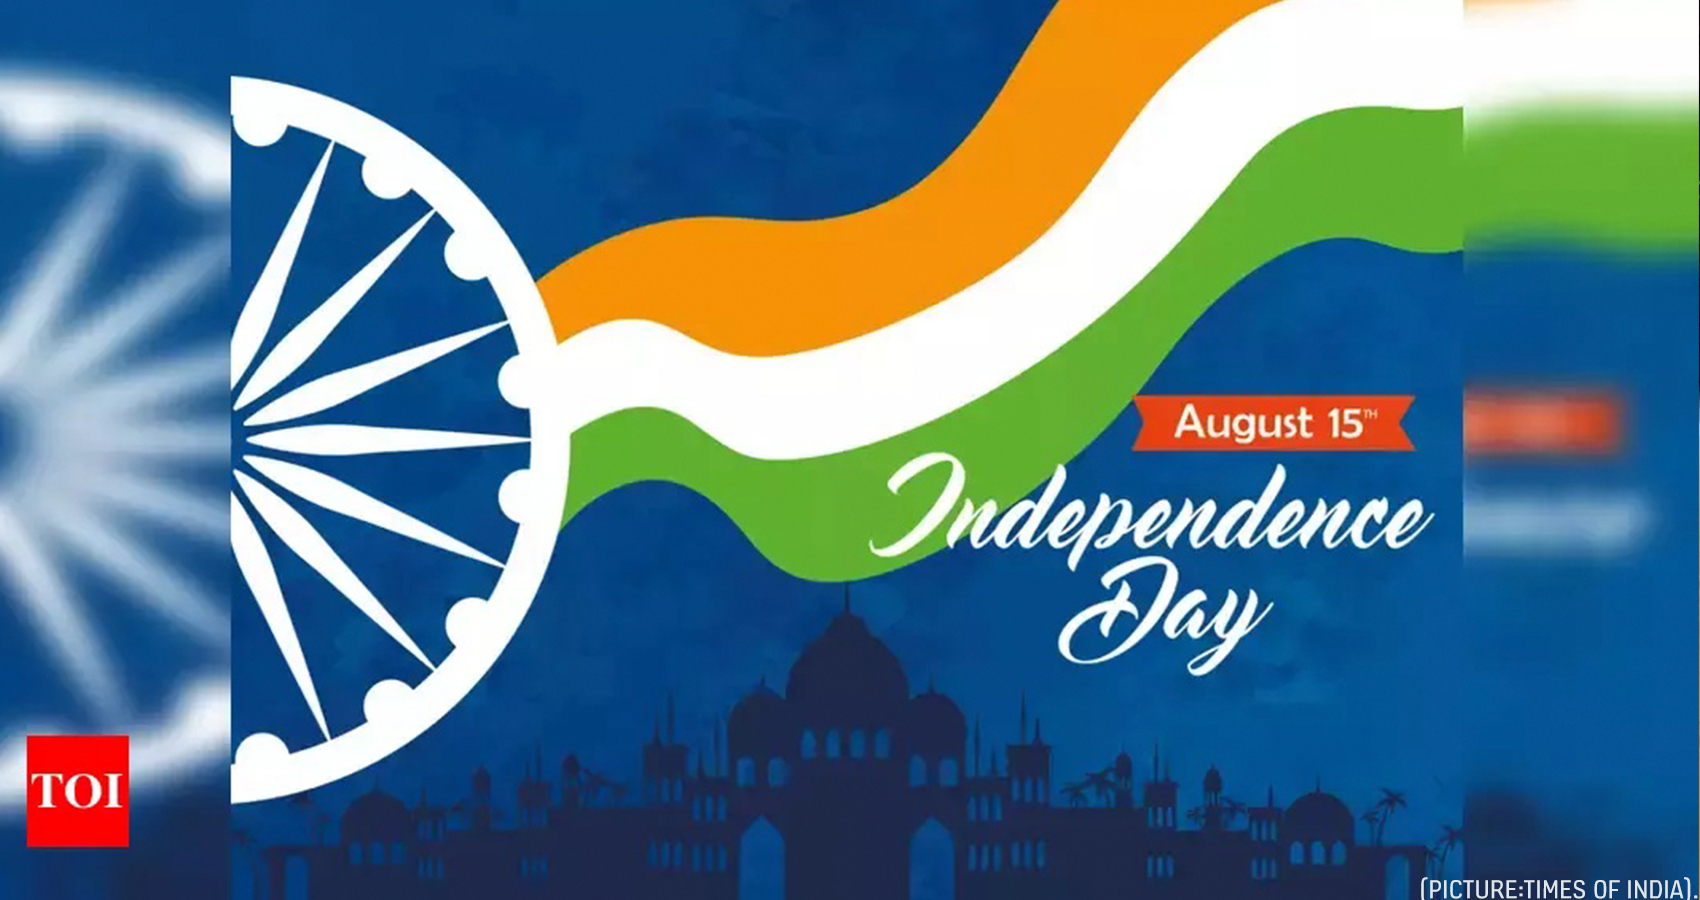 Whose Freedom Are We Celebrating This August 15?